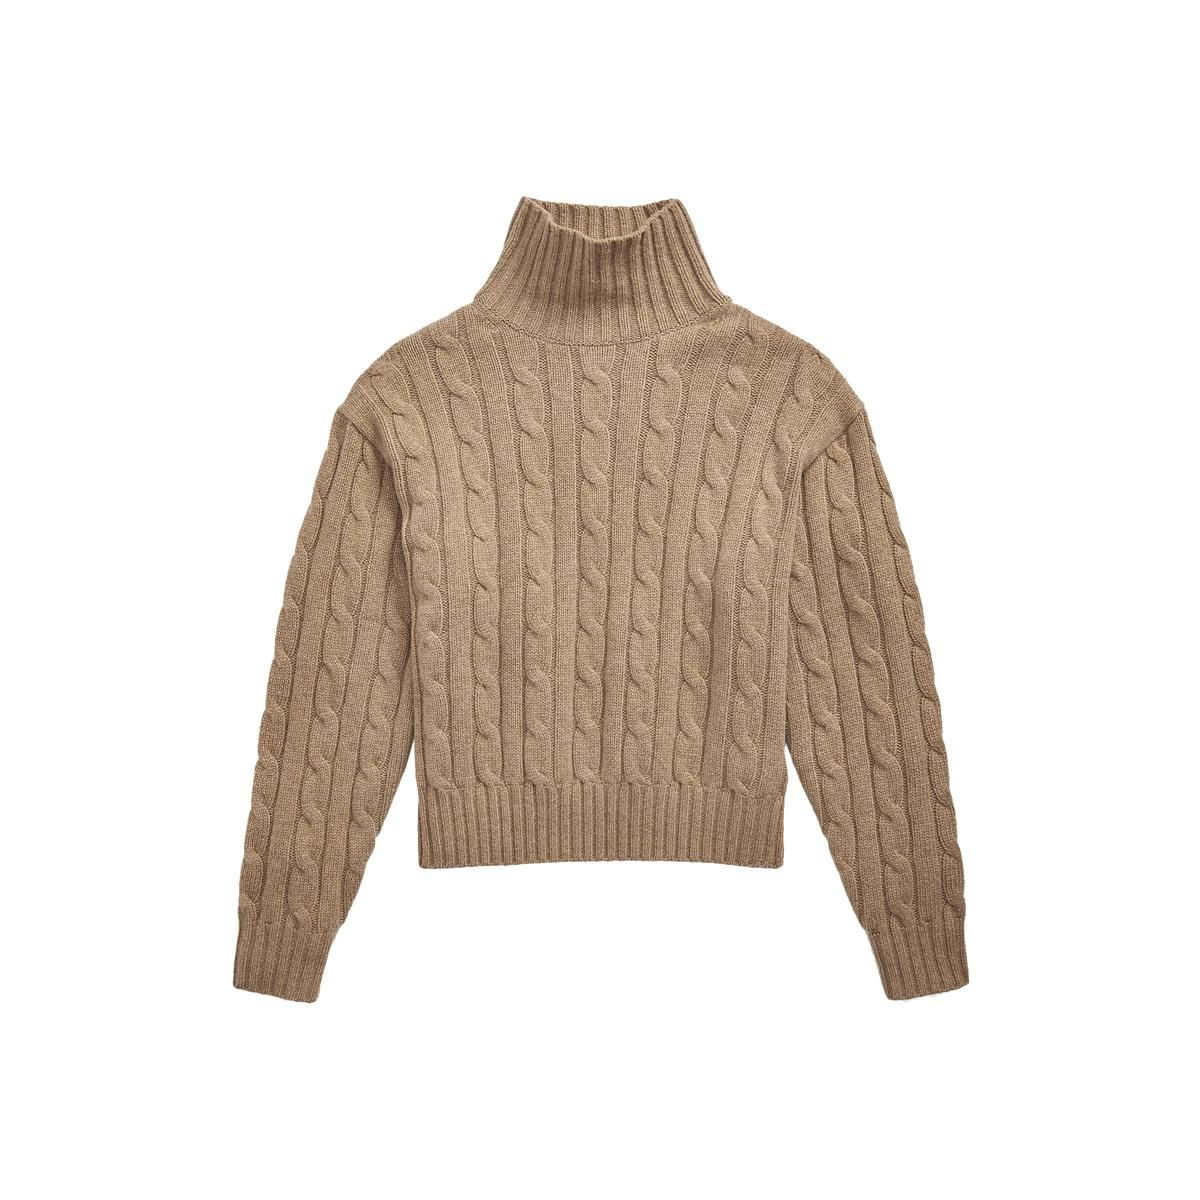 polo ralph lauren wool cashmere cable turtleneck sweater